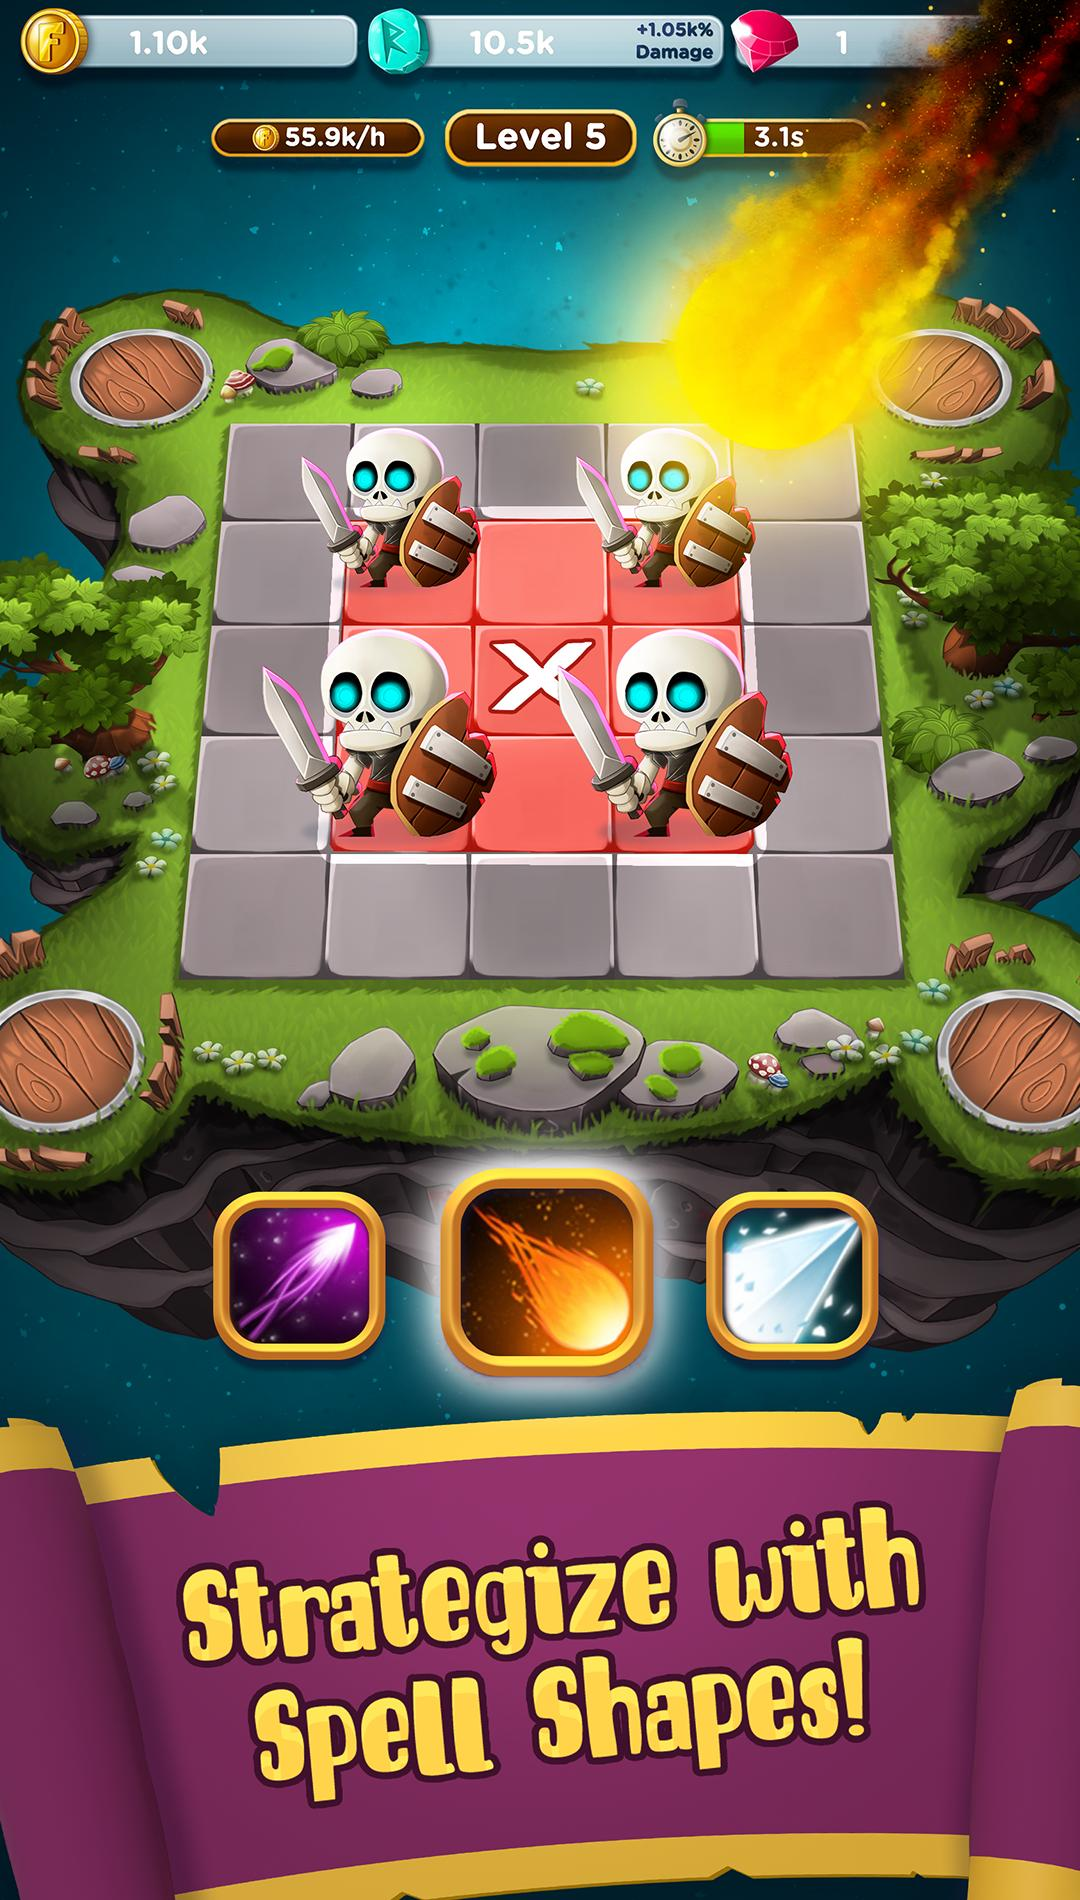 Incremental Mage - Idle Games for Android - APK Download